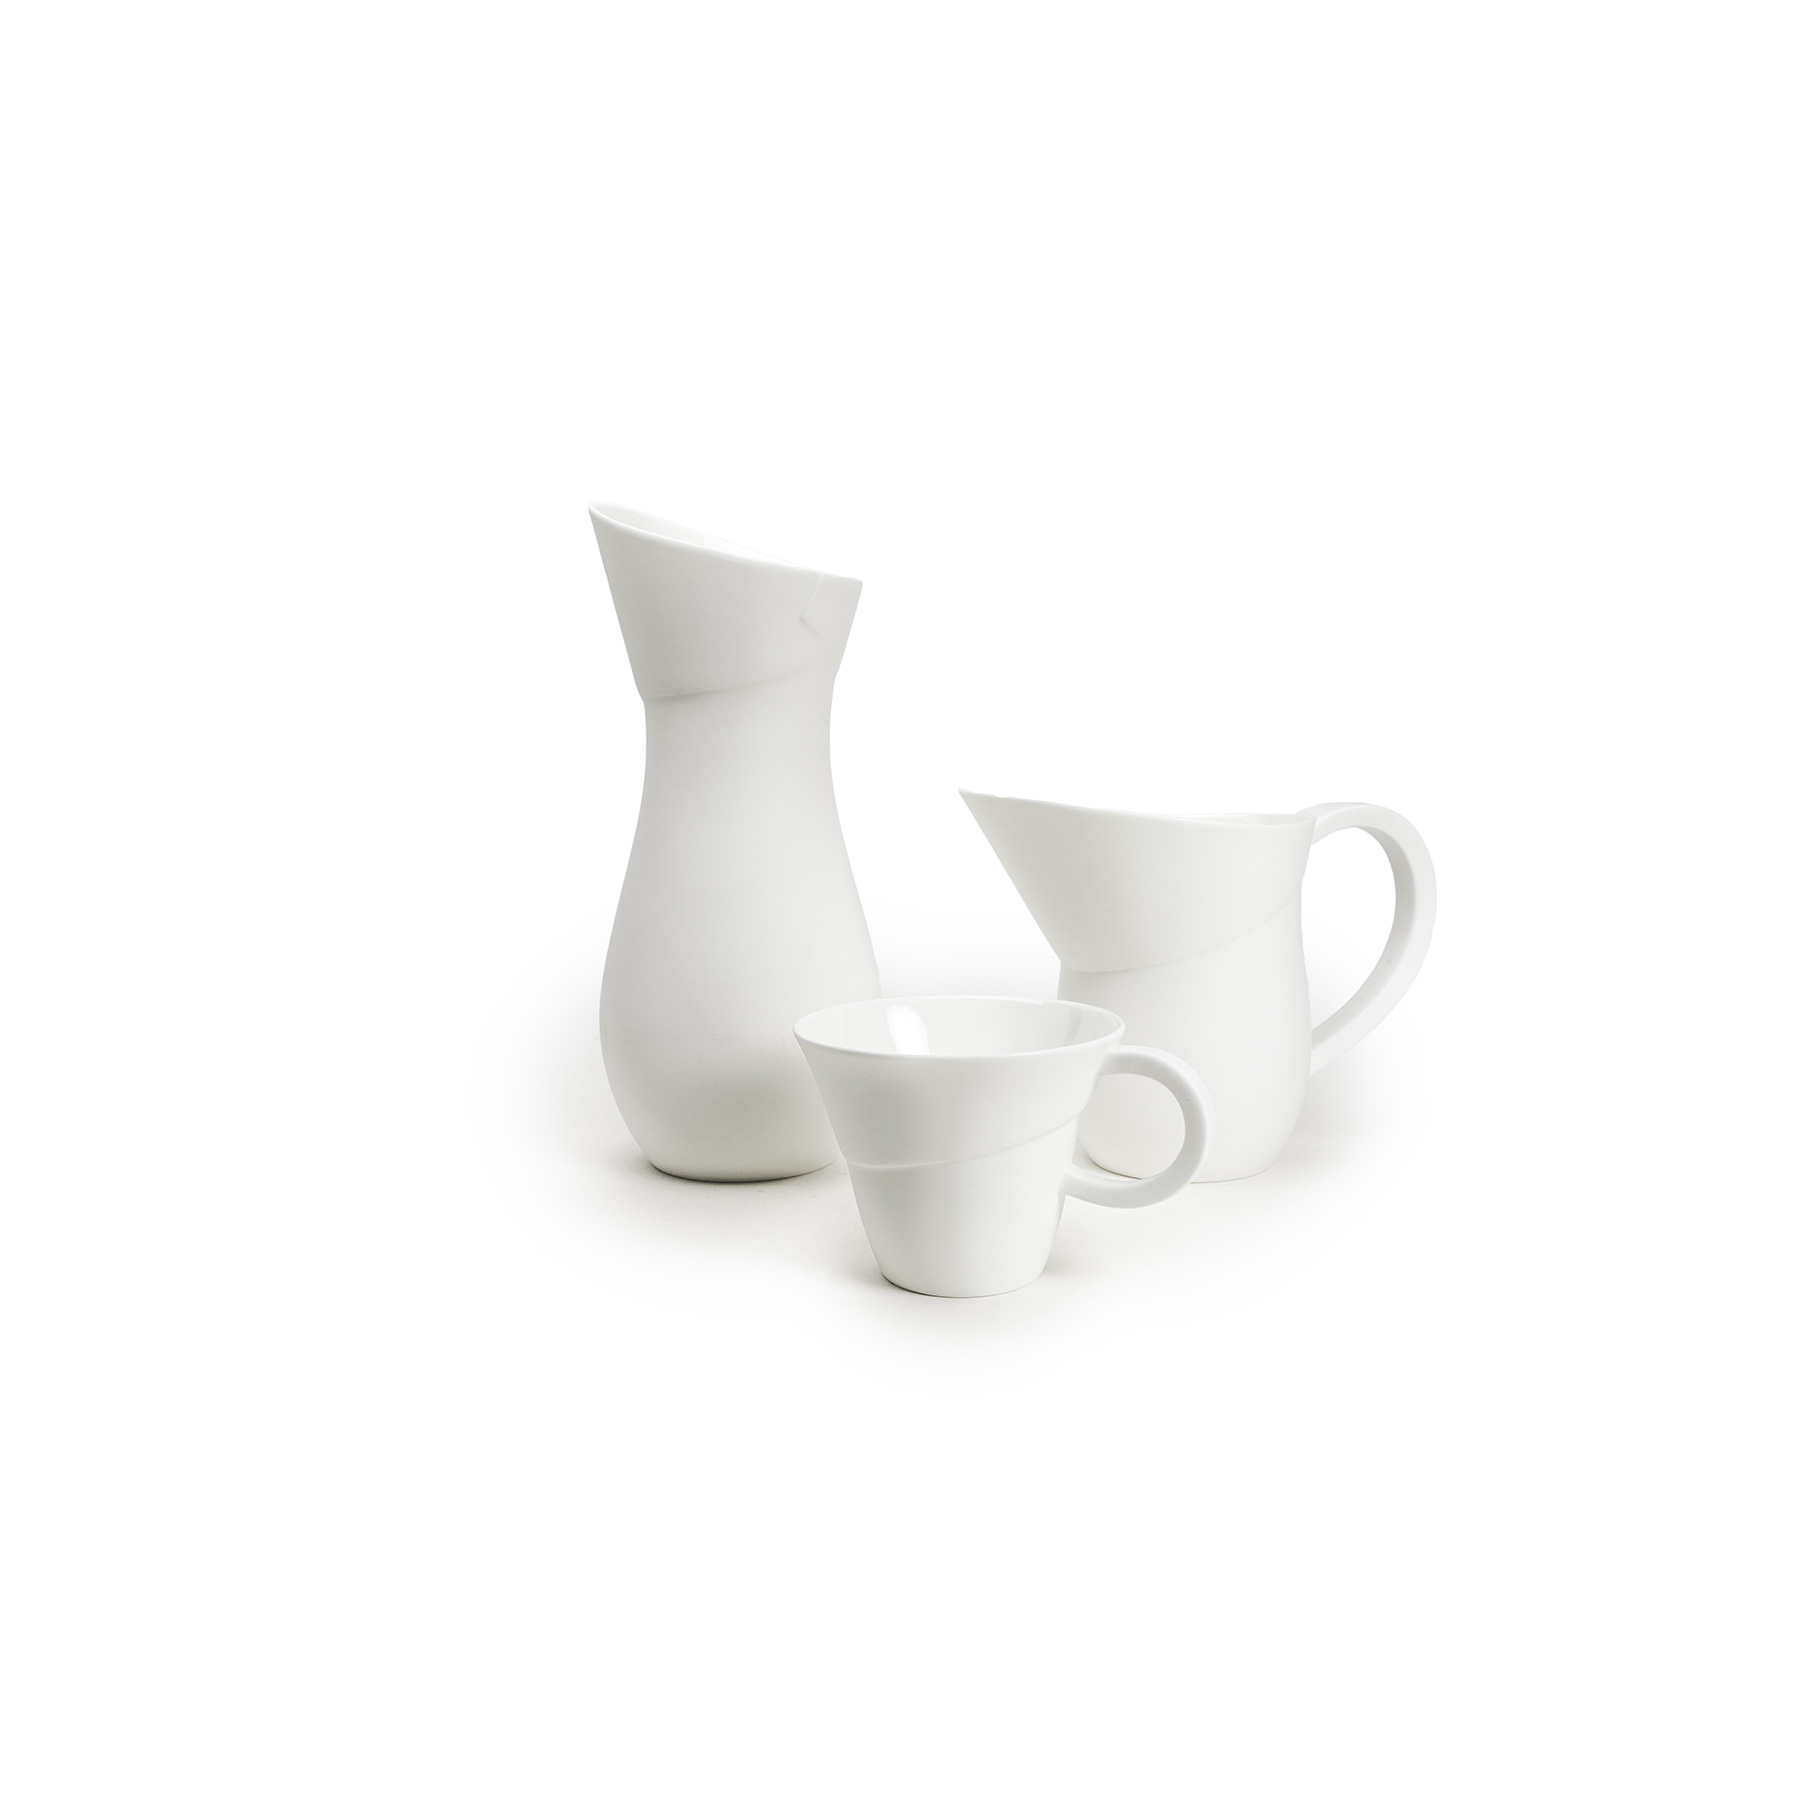 Flare Mug - <p>Russell Pinch and Oona Bannon are renowned furniture and lighting designers and have reduced the scale in which they design to create Flare.<br /> Flare is a fine bone china collection that involves generous and curvaceous forms paired with exaggerated ratios delivered via handles and spouts. The shapes offer a sculptural modernity whilst referencing classic form, and make a virtue of light and shadow. For a radical departure from their usual palette, the Festival Jug is a hand-painted prestige piece that is wild in colour and takes an arduous five and a half hours to decorate.</p>    Matter of Stuff